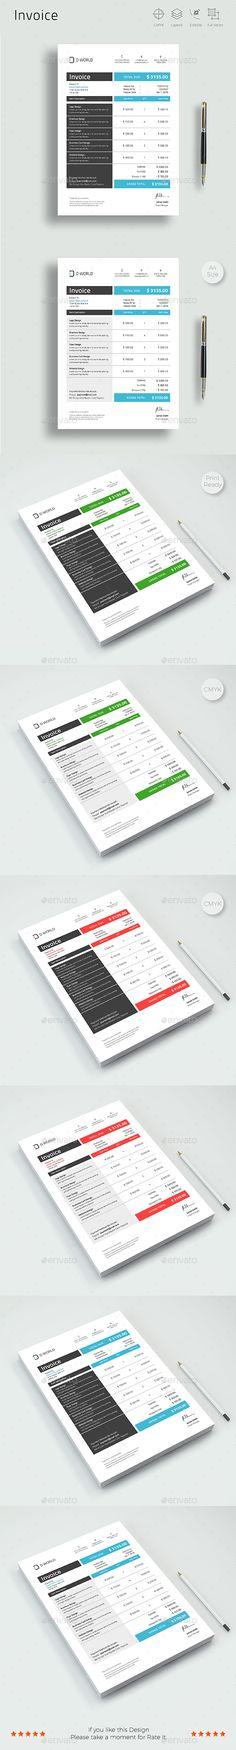 invoice template psd vector eps ai illustrator ms word proposal invoice templates pinterest stationery printing print templates and template